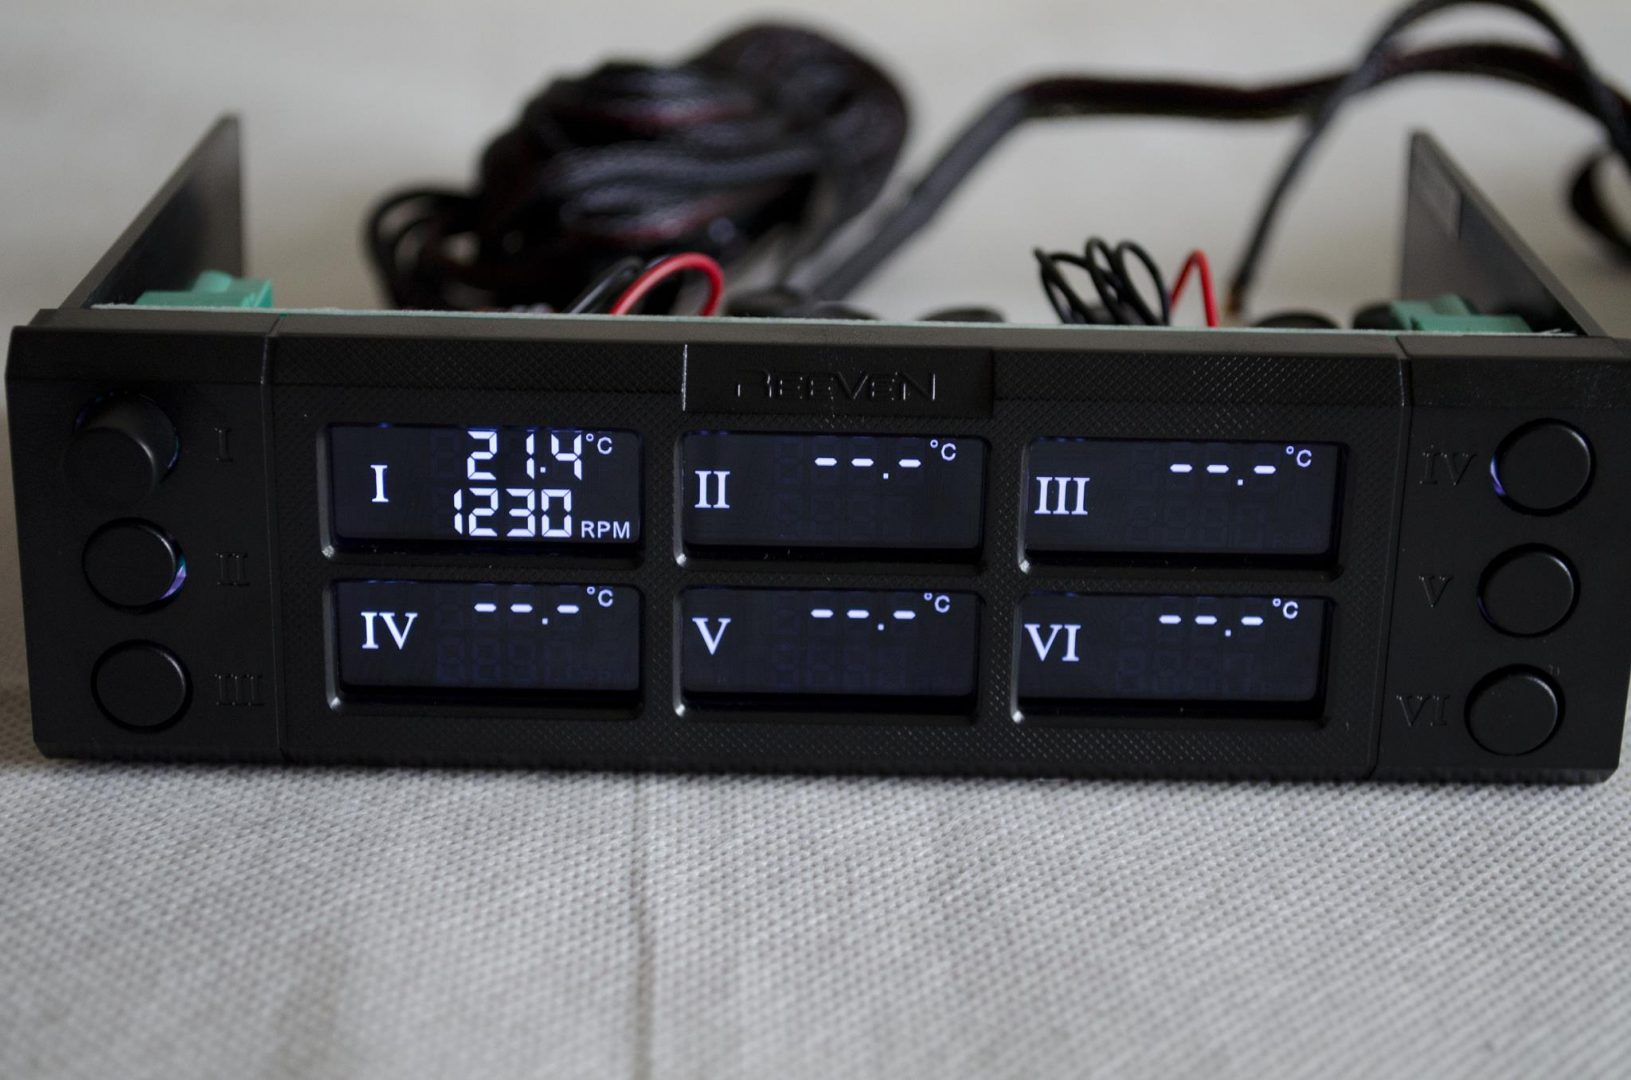 REEVEN SIX EYES TWO Fan Controller Review_5